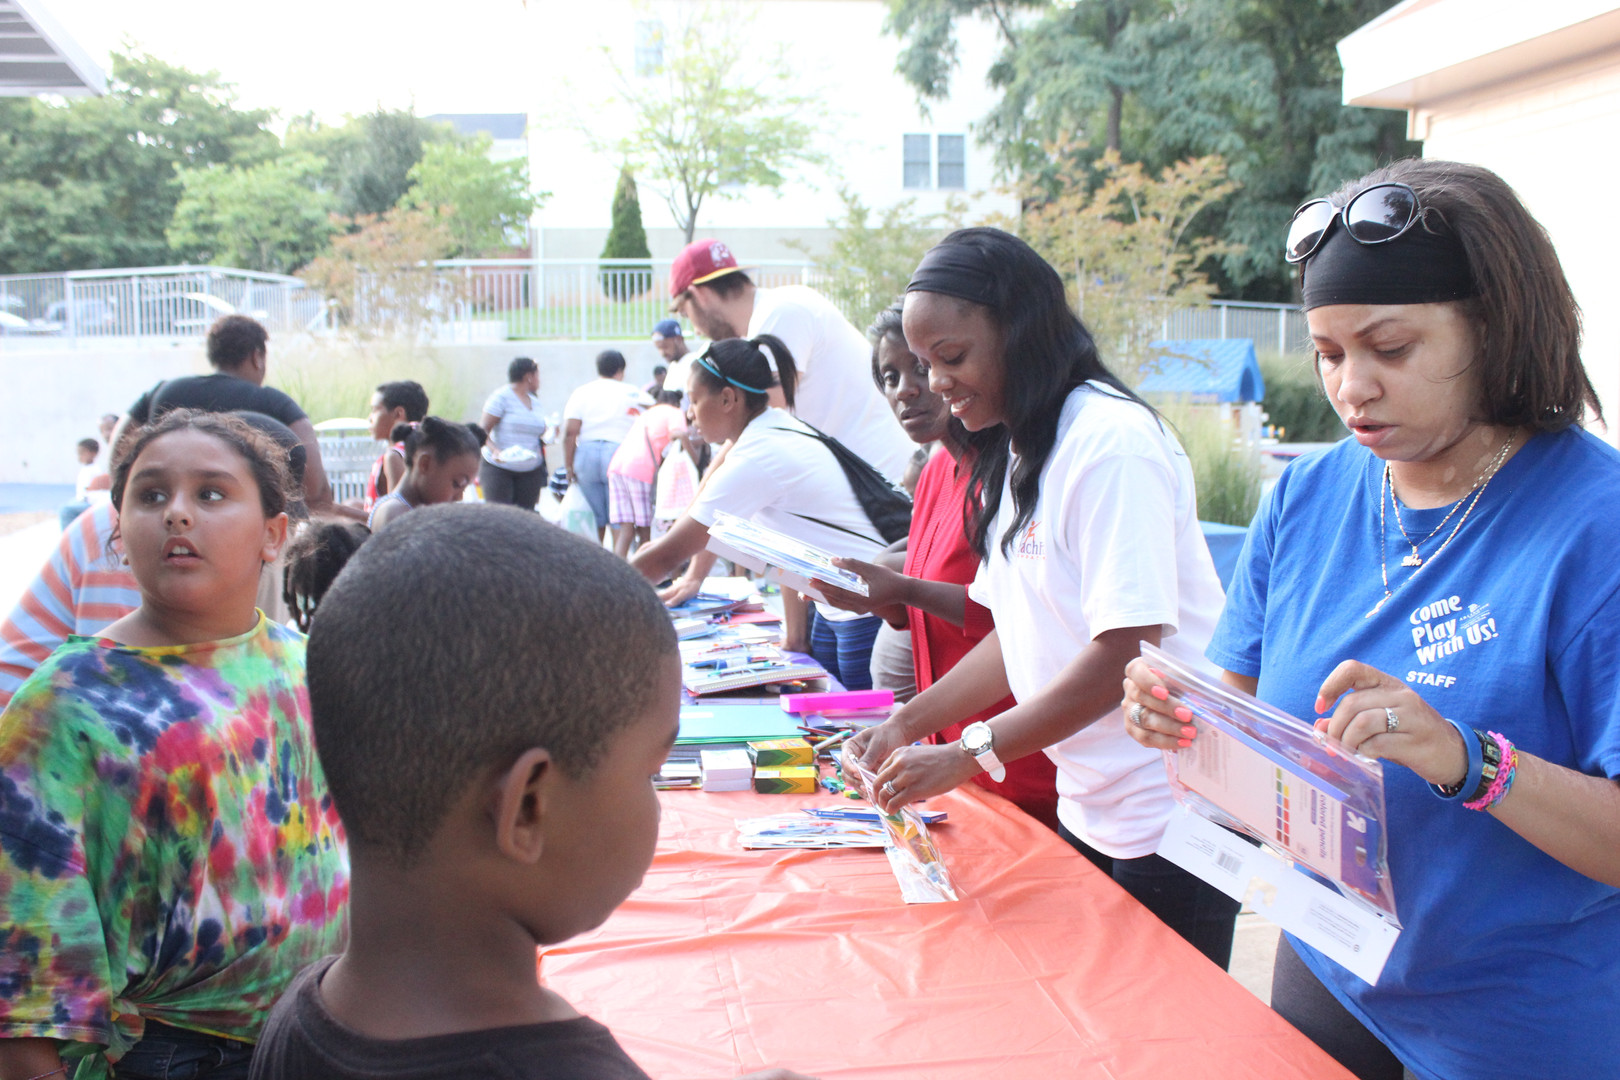 School Supply Drive/Cookout